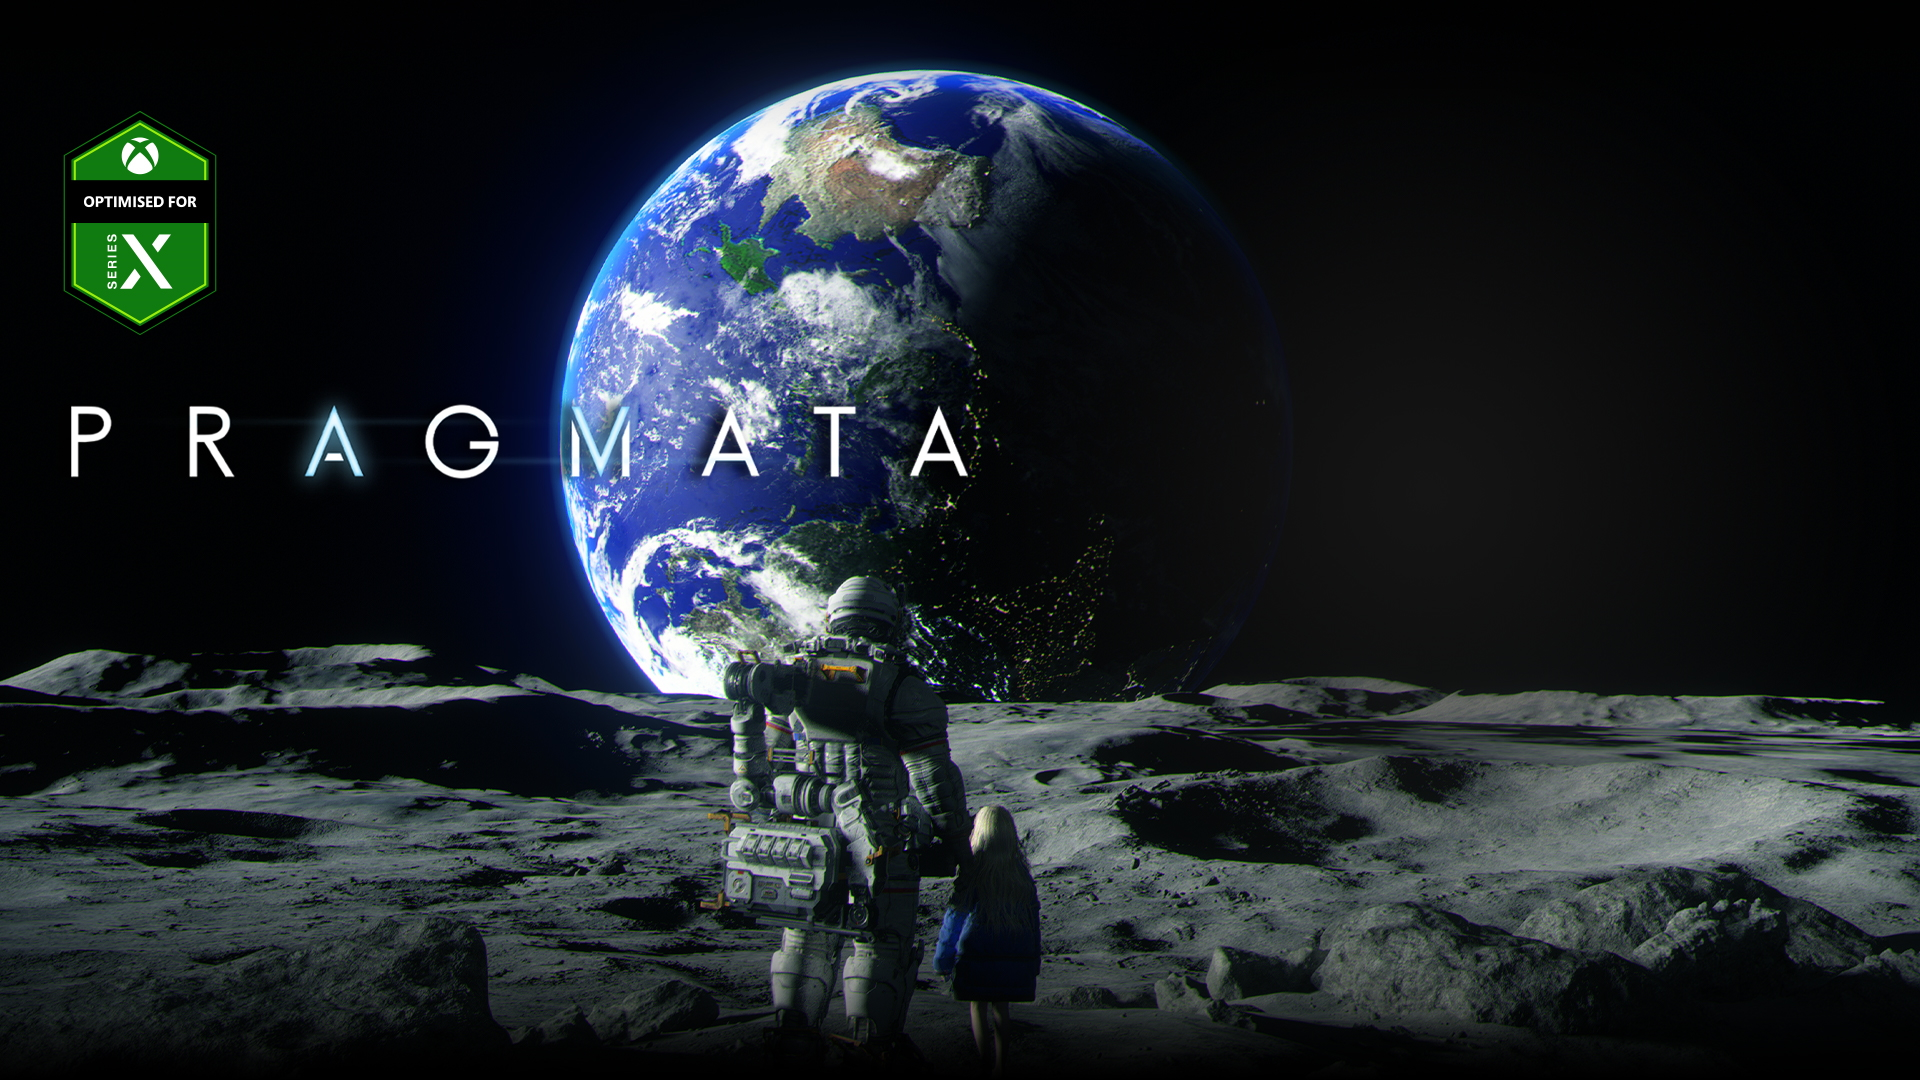 Optimised for Xbox Series X logo, Pragmata, An astronaut and a young girl look at the Earth while standing together on the moon